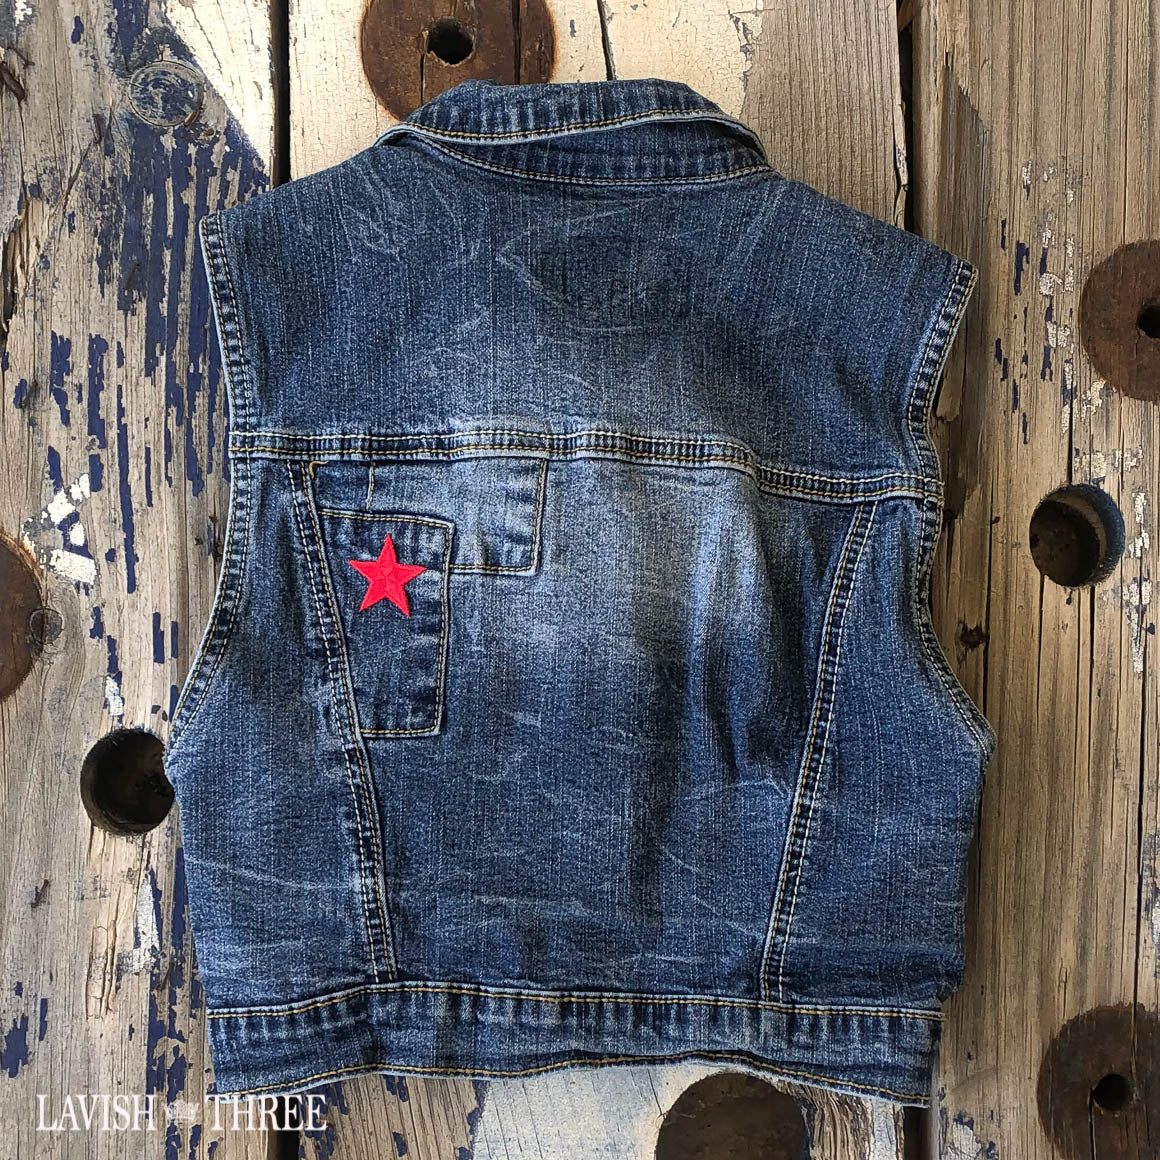 Denim USA tattered flag vest girls american lavish three 3